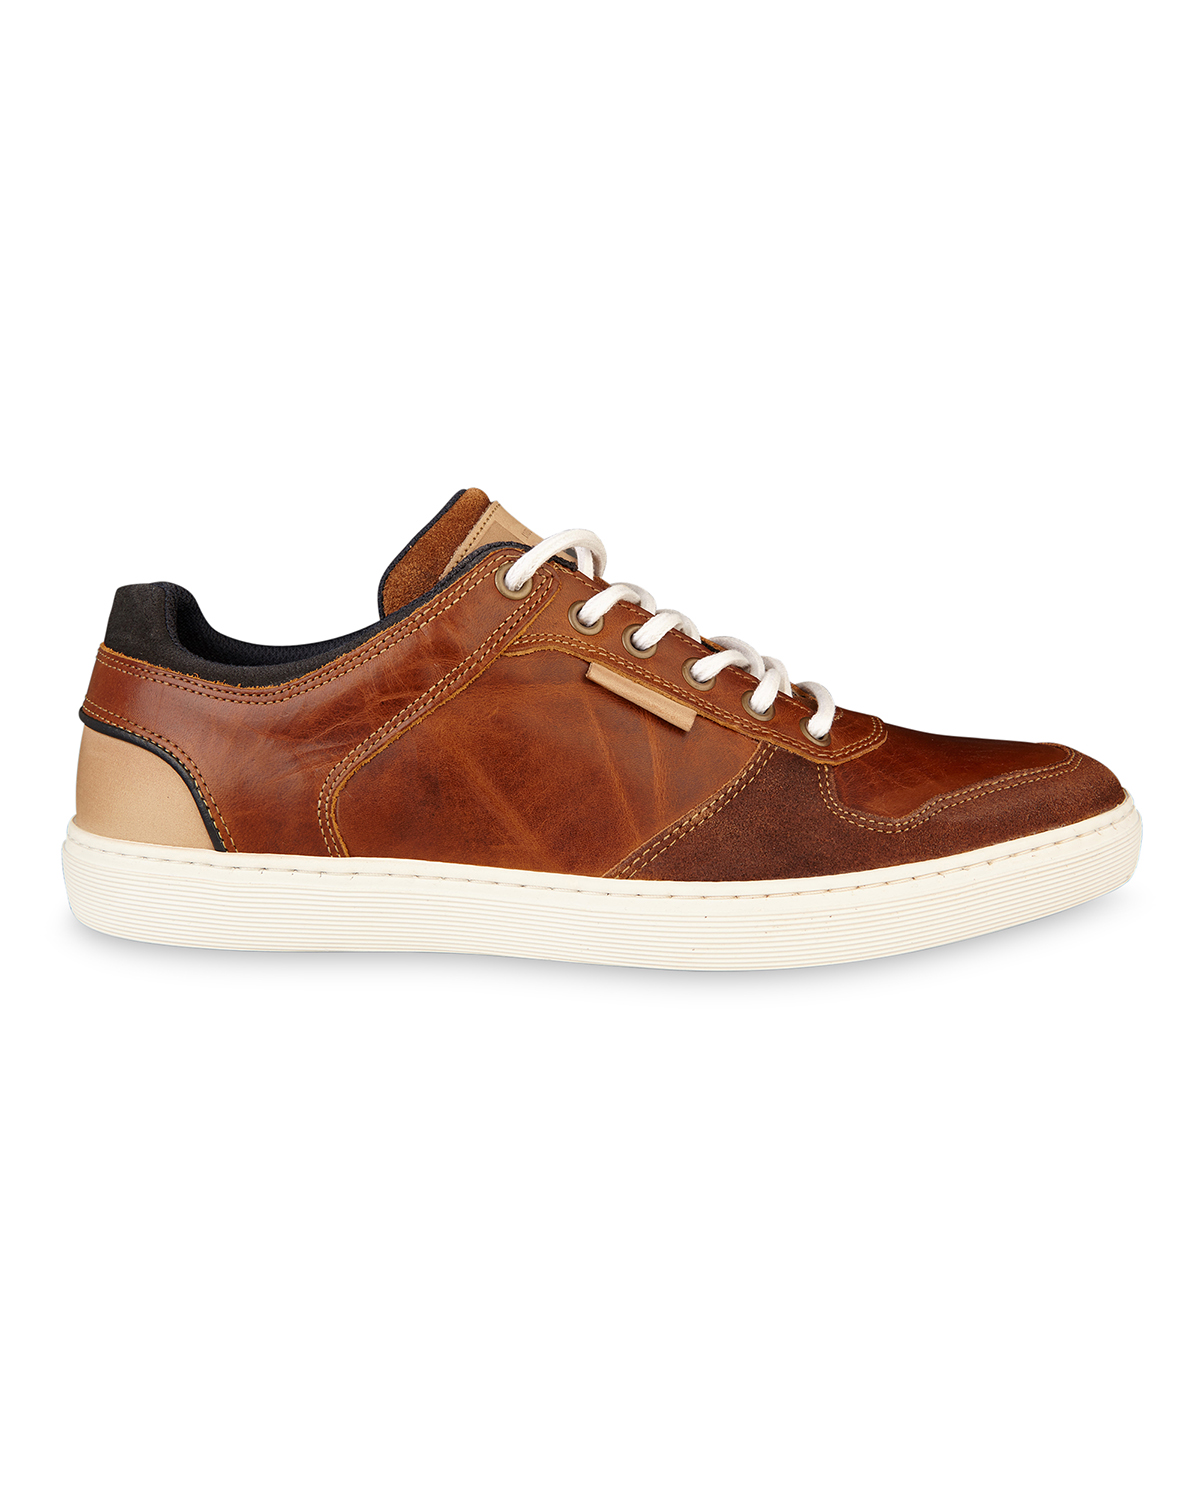 HERREN SNEAKERS AUS ECHTEM LEDER | 79822213 WE Fashion